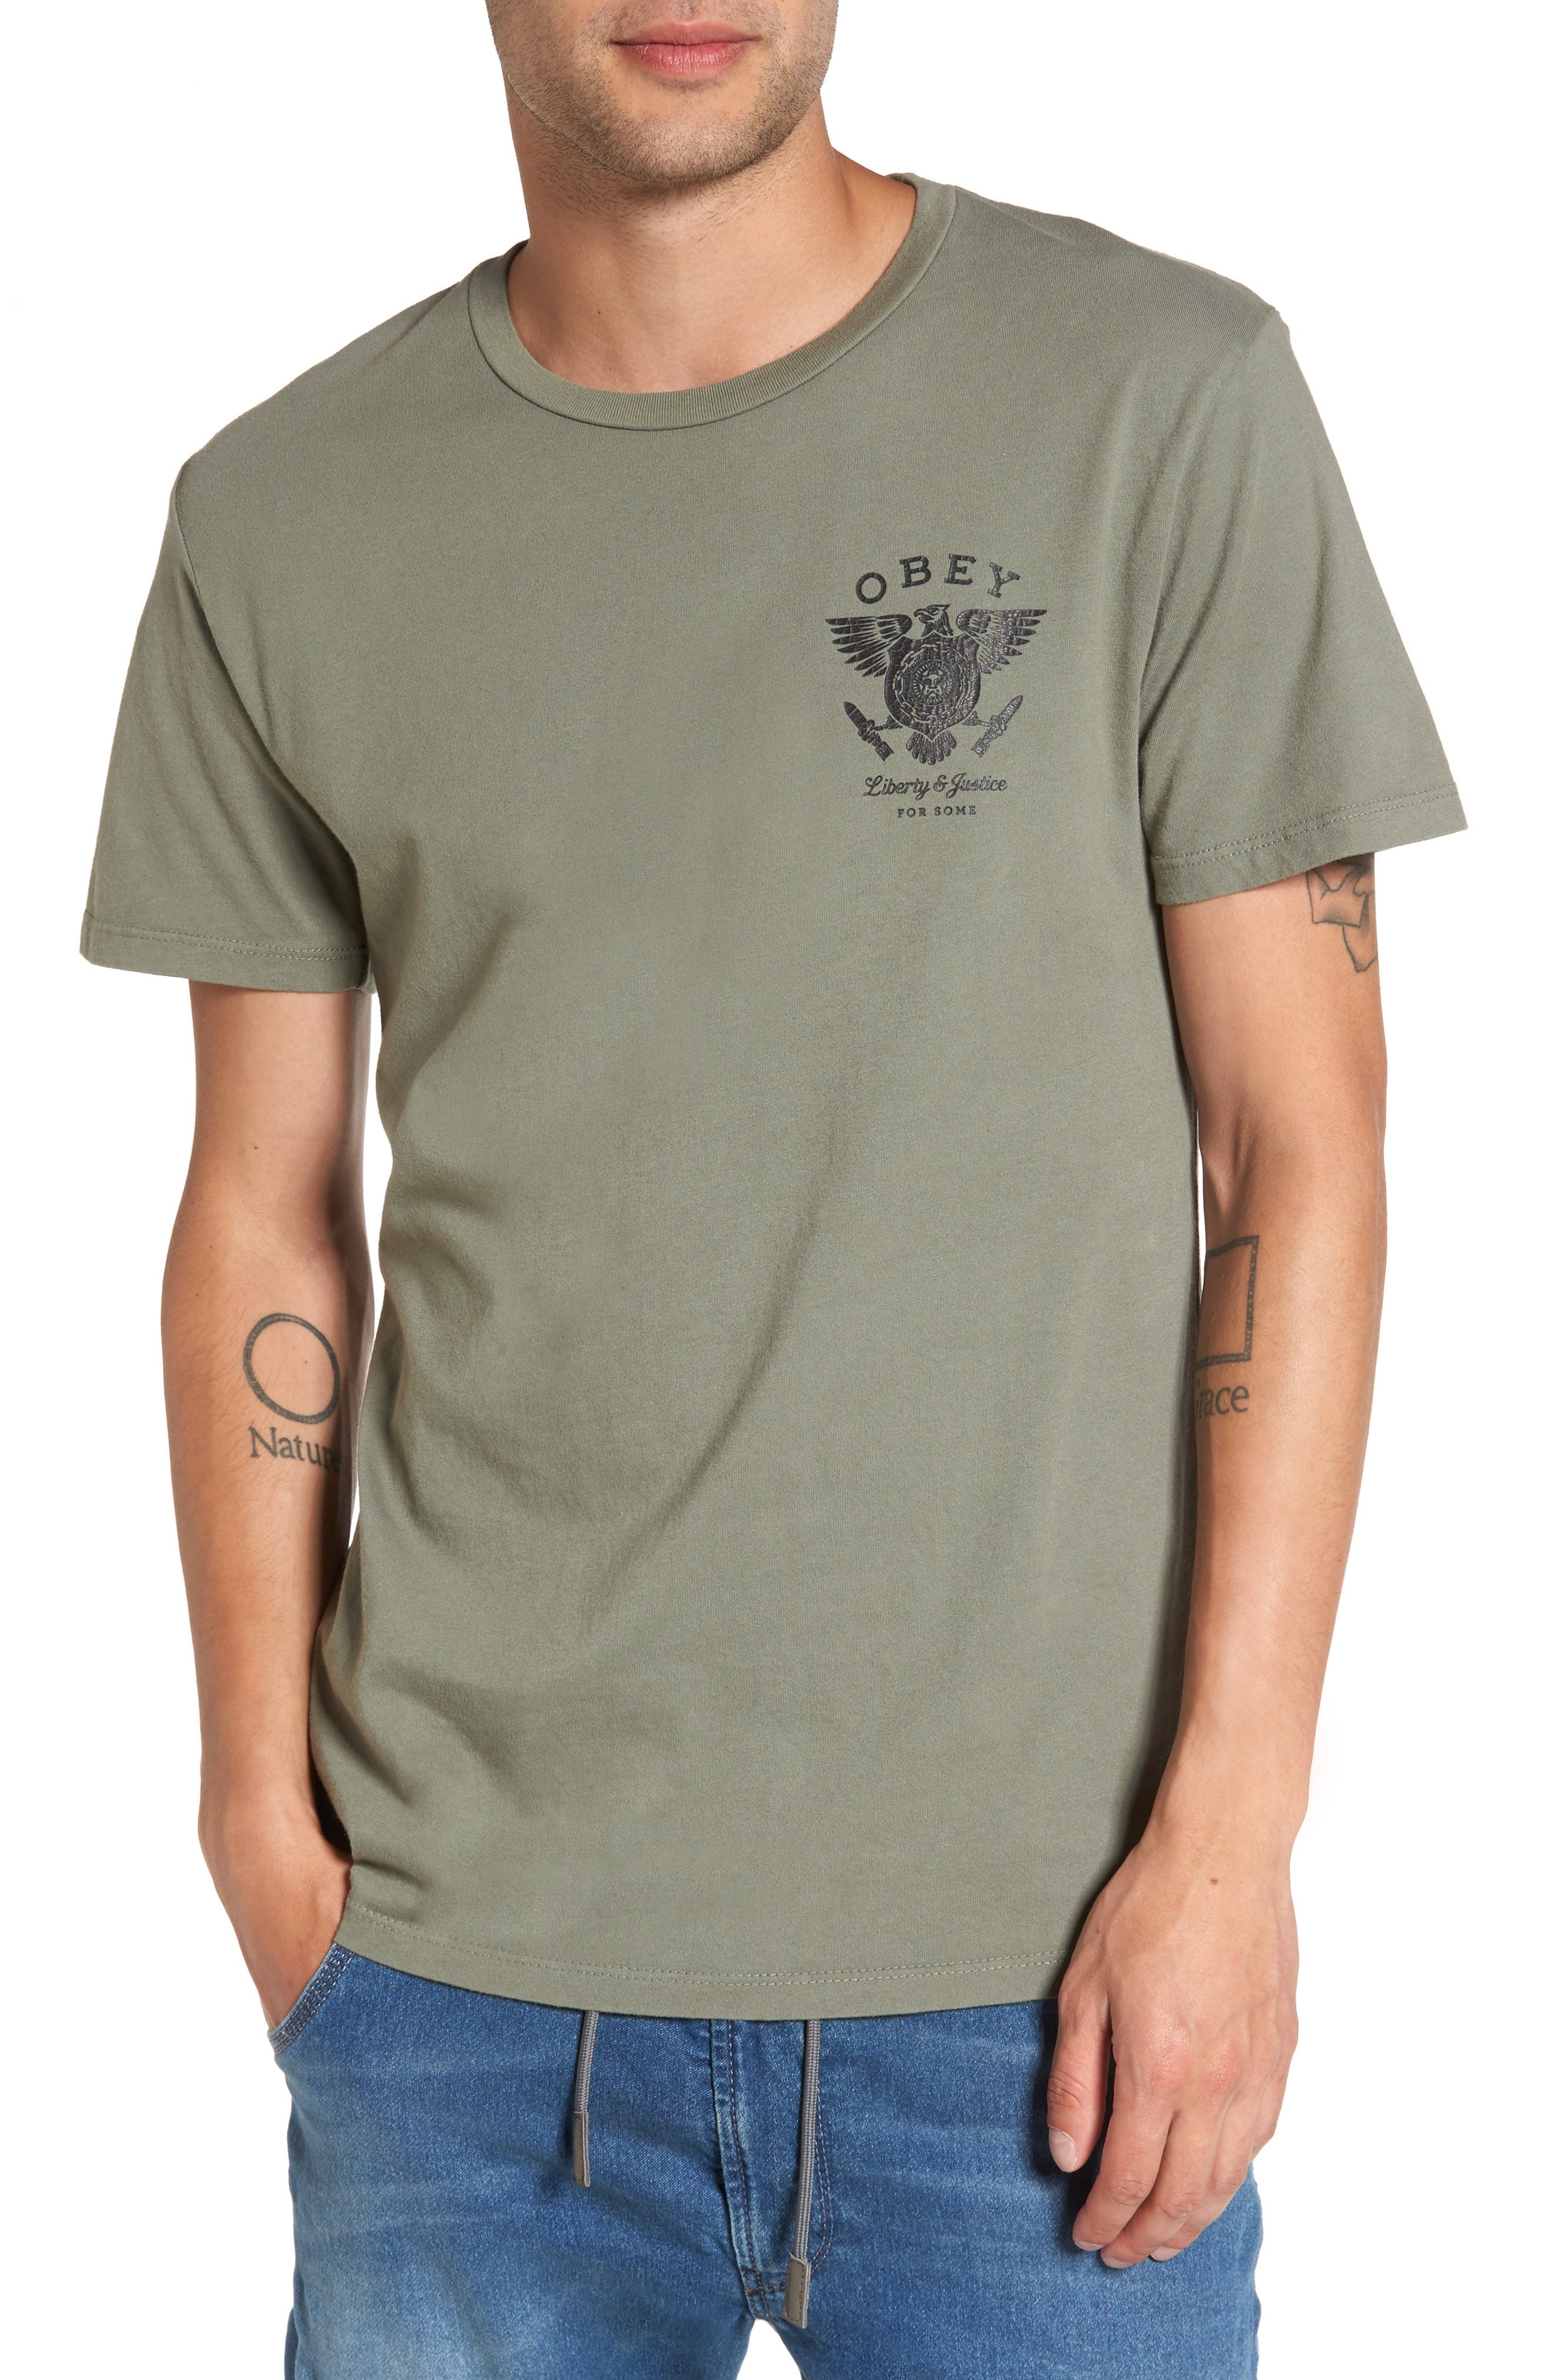 Obey Liberty & Justice Graphic T-Shirt